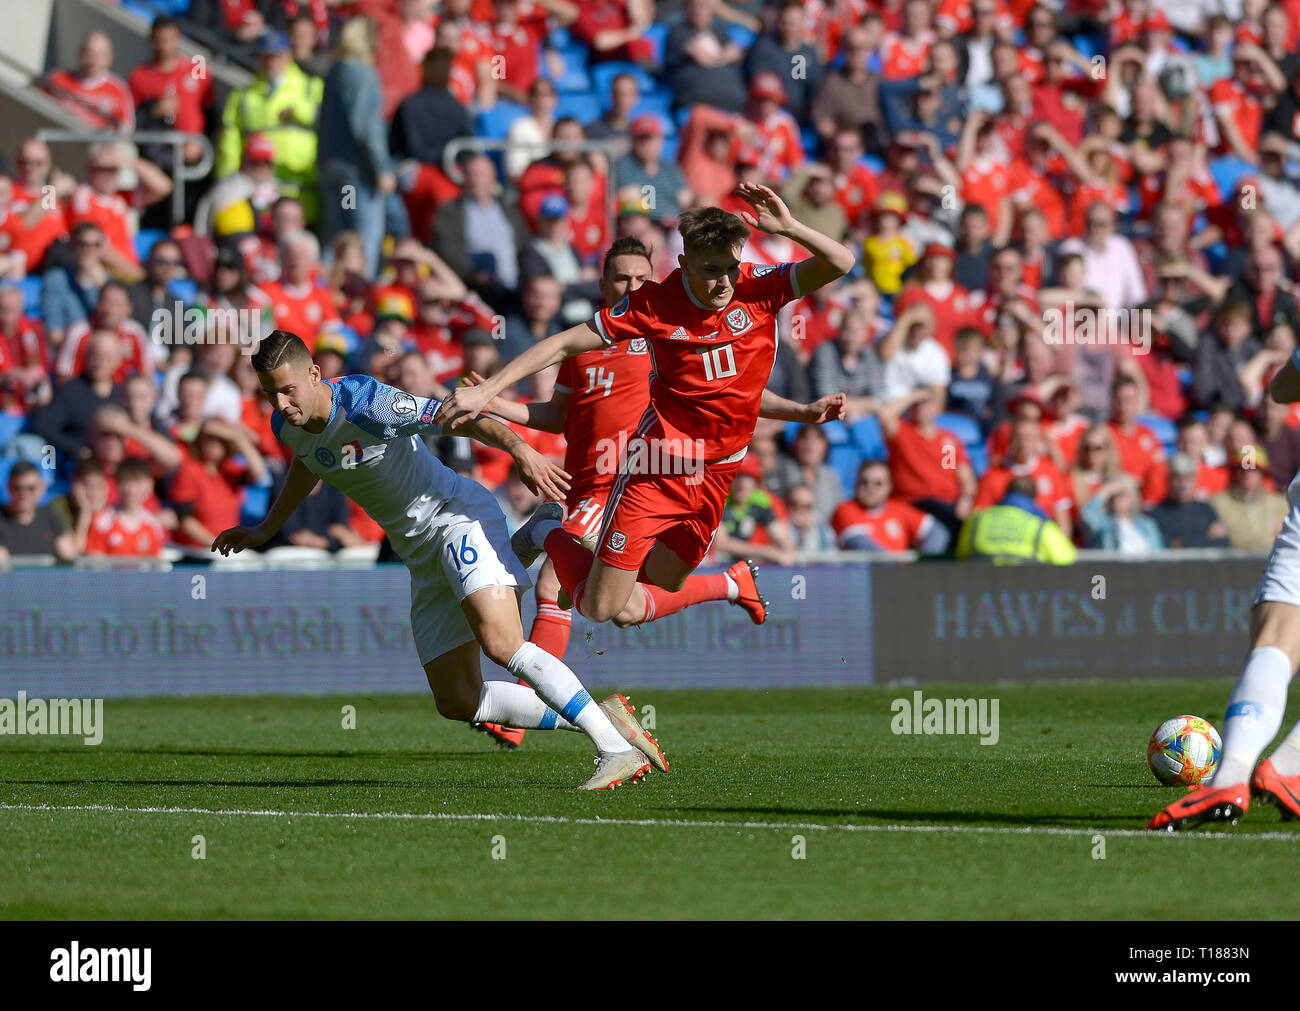 Cardiff, Wales, UK. 24th Mar 2019. Football, UEFA European Qualifiers Group E, Wales v Slovakia, 24/03/19, Cardiff City Stadium, K.O 2PM  Wales' David Brooks get fouled by Slovakia's David Hancko  Andrew Dowling Credit: Andrew Dowling/Influential Photography/Alamy Live News Stock Photo